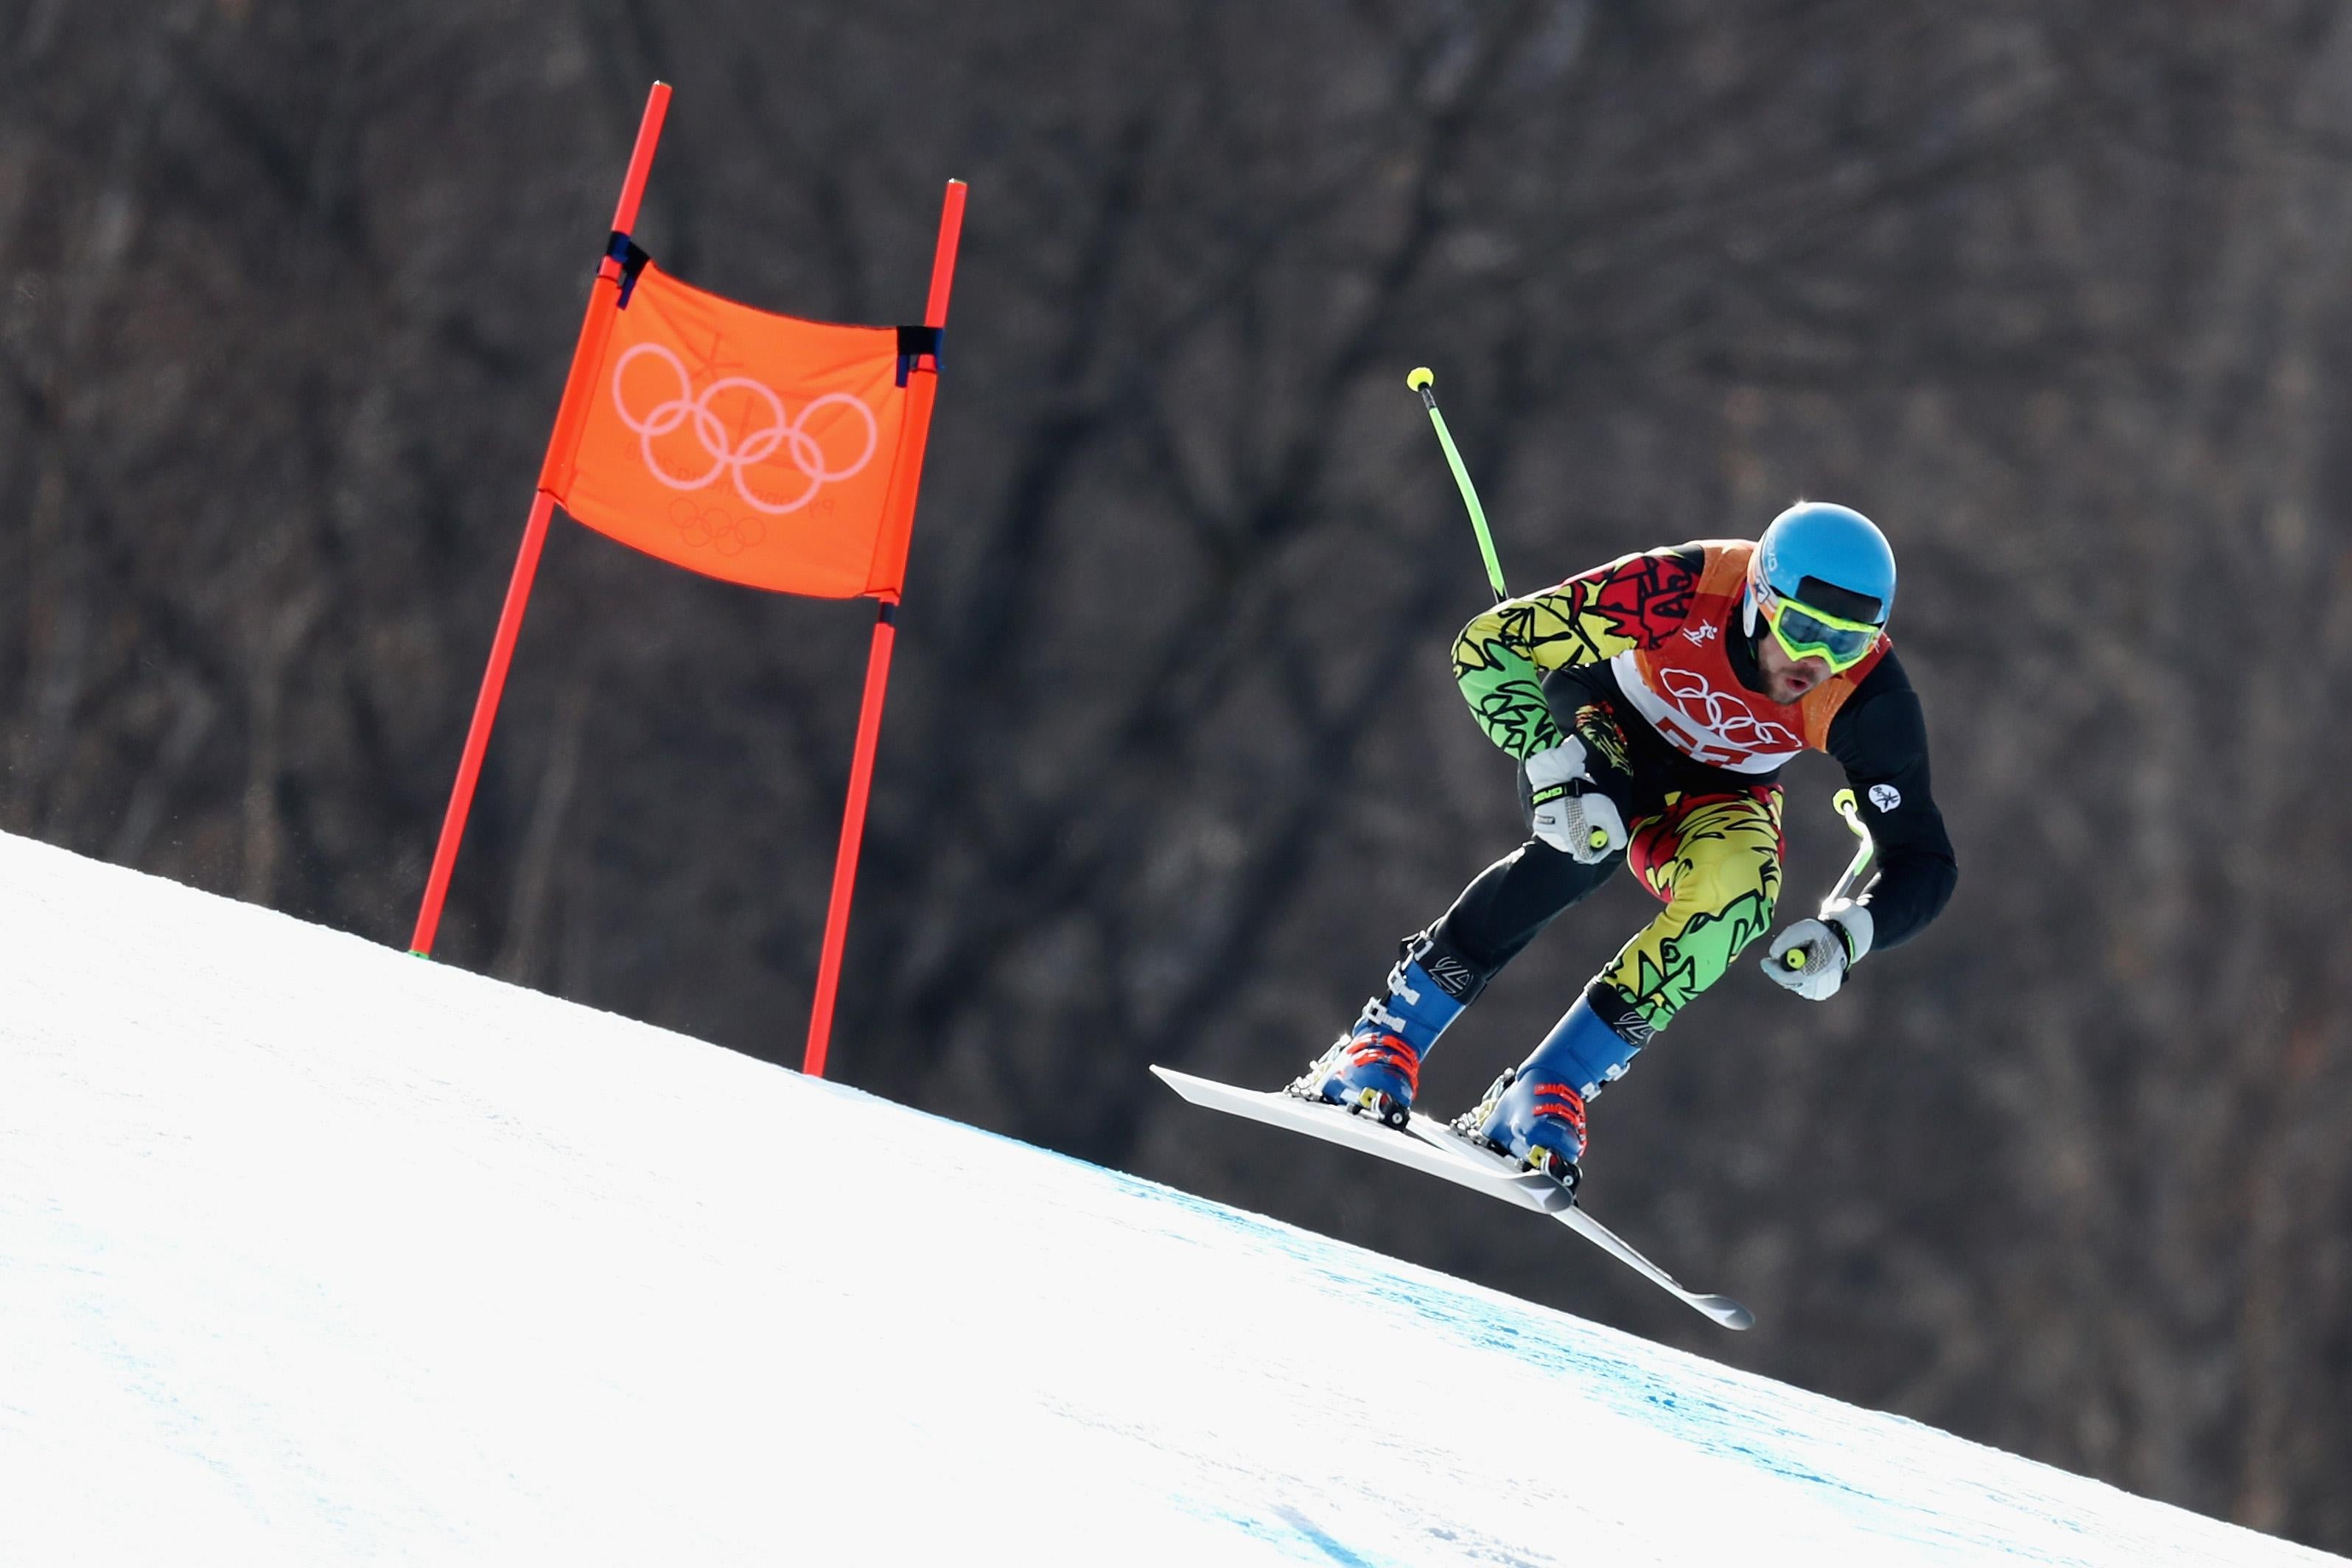 PYEONGCHANG-GUN, SOUTH KOREA - FEBRUARY 15:  Ivan Kovbasnyuk of Ukraine makes a run during the Men's Downhill on day six of the PyeongChang 2018 Winter Olympic Games at Jeongseon Alpine Centre on February 15, 2018 in Pyeongchang-gun, South Korea.  (Photo by Al Bello/Getty Images)